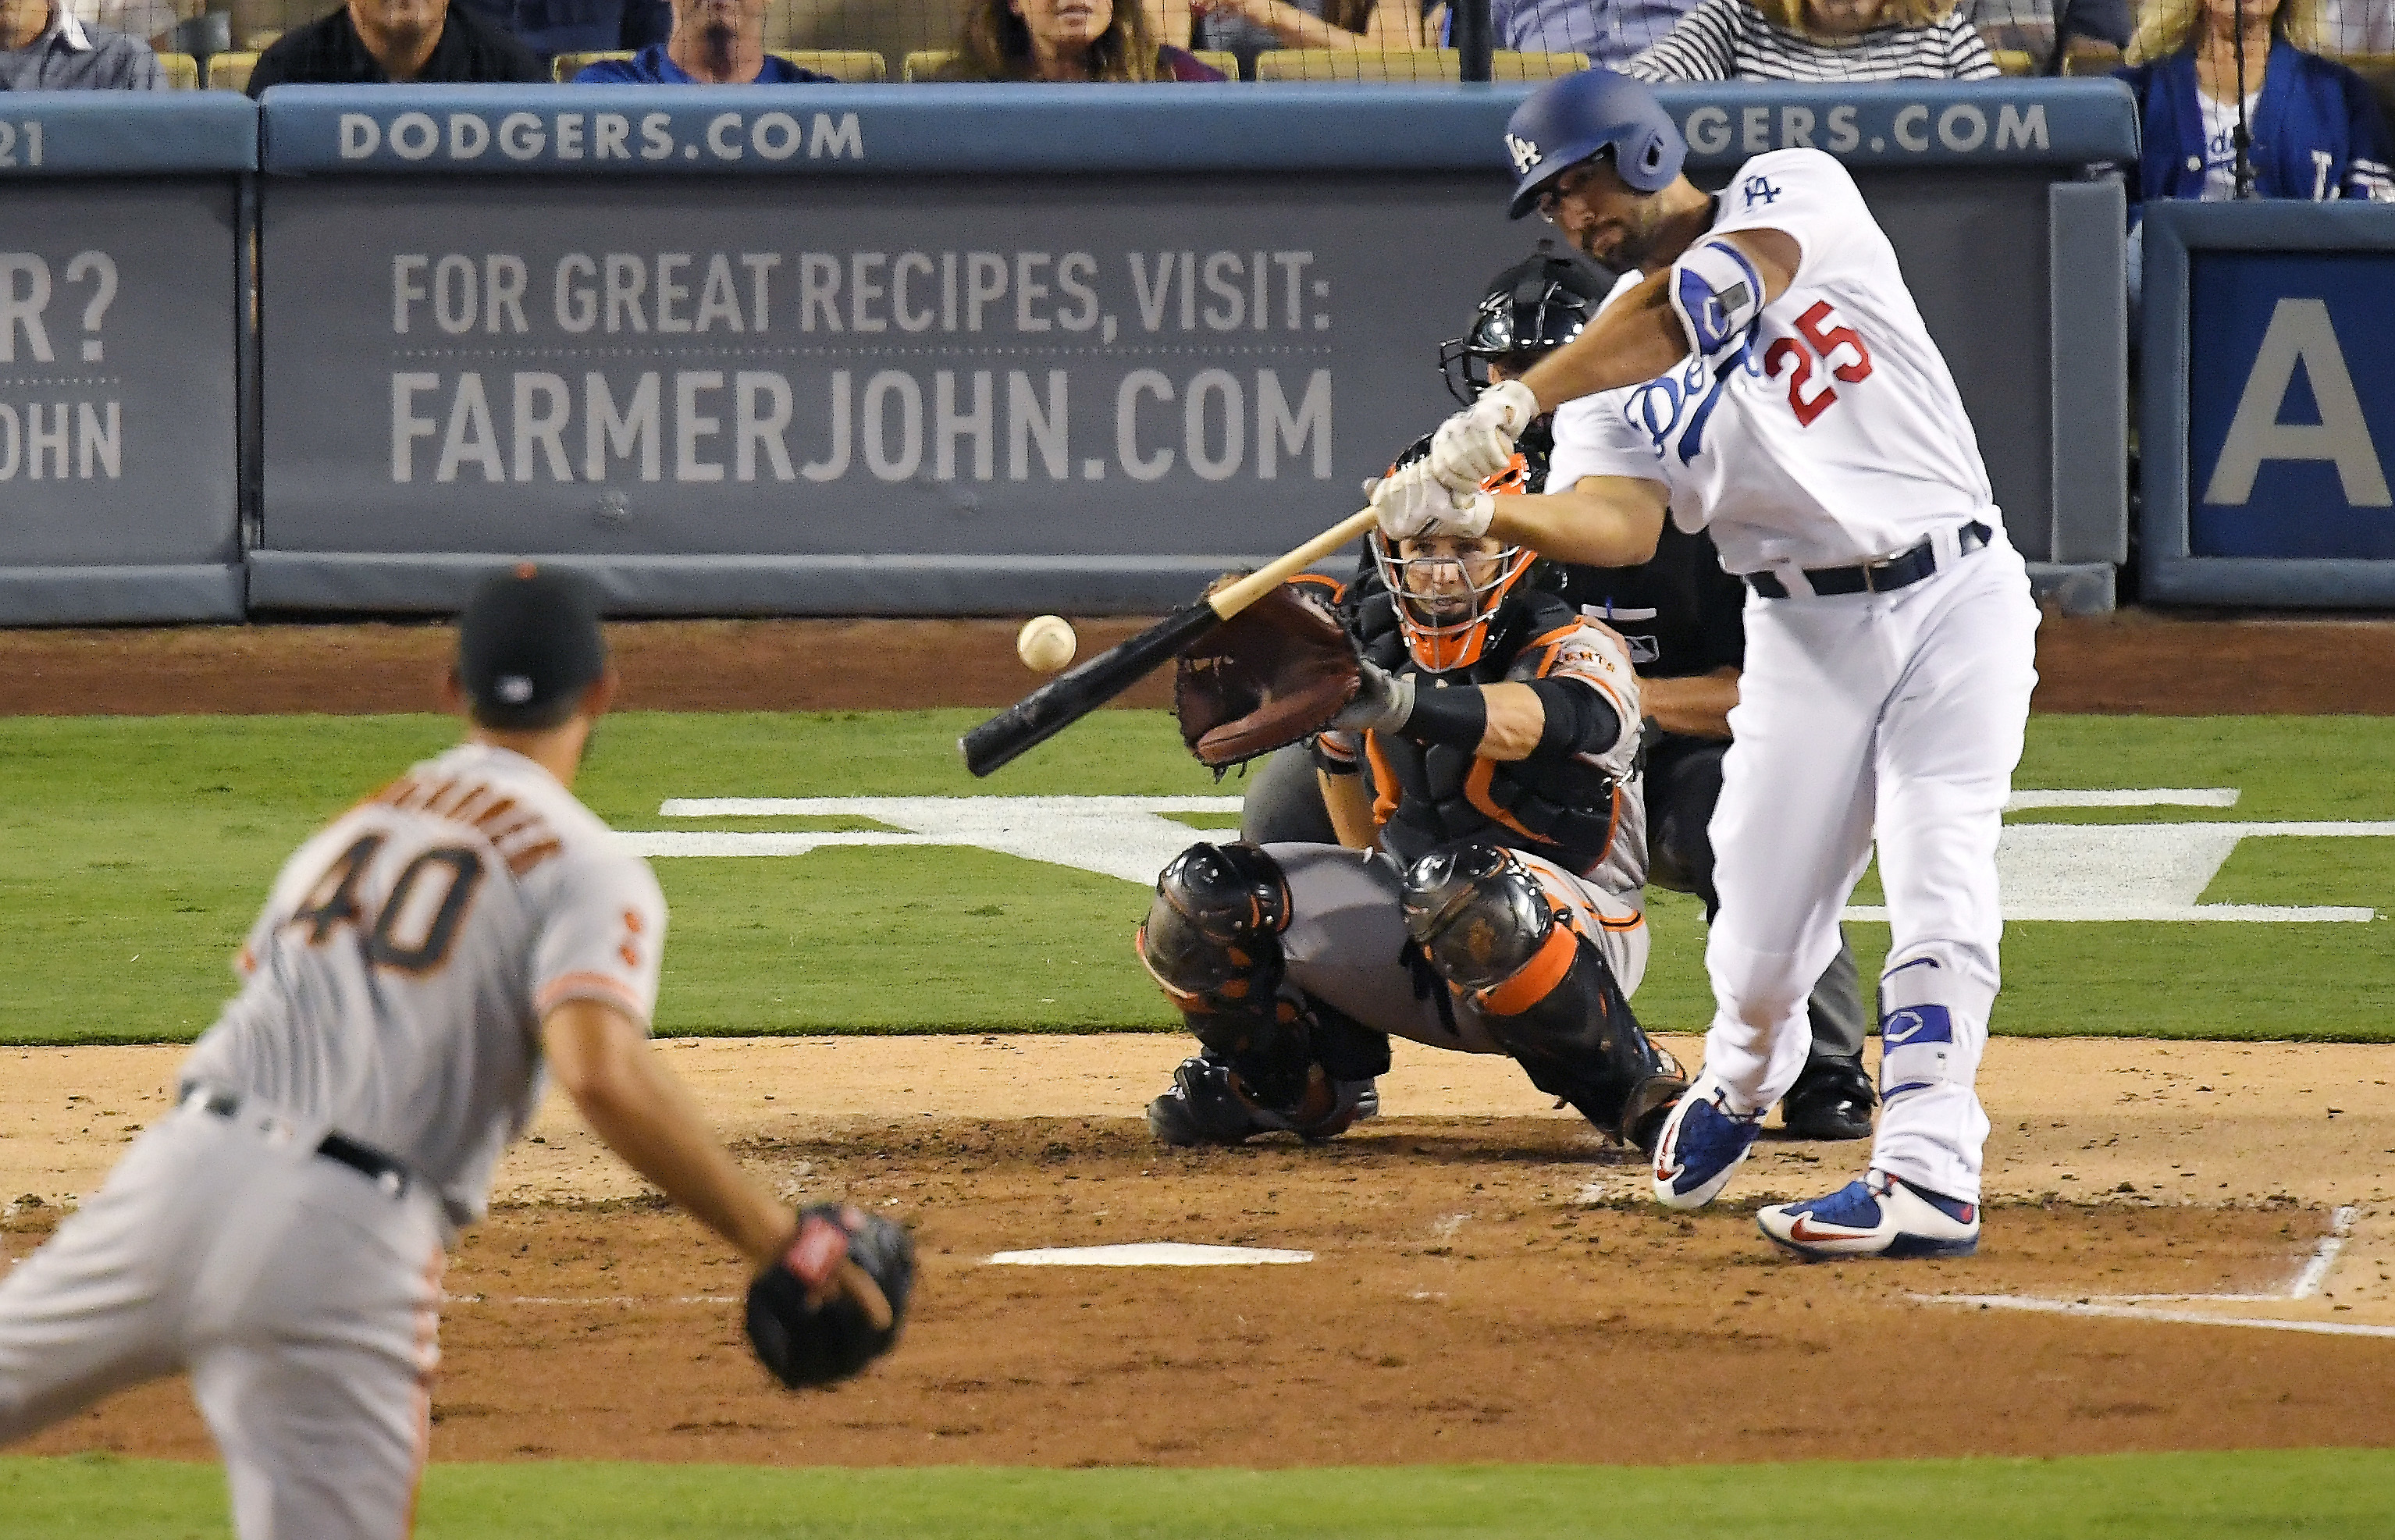 Los Angeles Dodgers' Rob Segedin, right, hits a solo home run off San Francisco Giants starting pitcher Madison Bumgarner, left, as catcher Buster Posey watches during the second inning of a baseball game, Tuesday, Aug. 23, 2016, in Los Angeles. (AP Photo